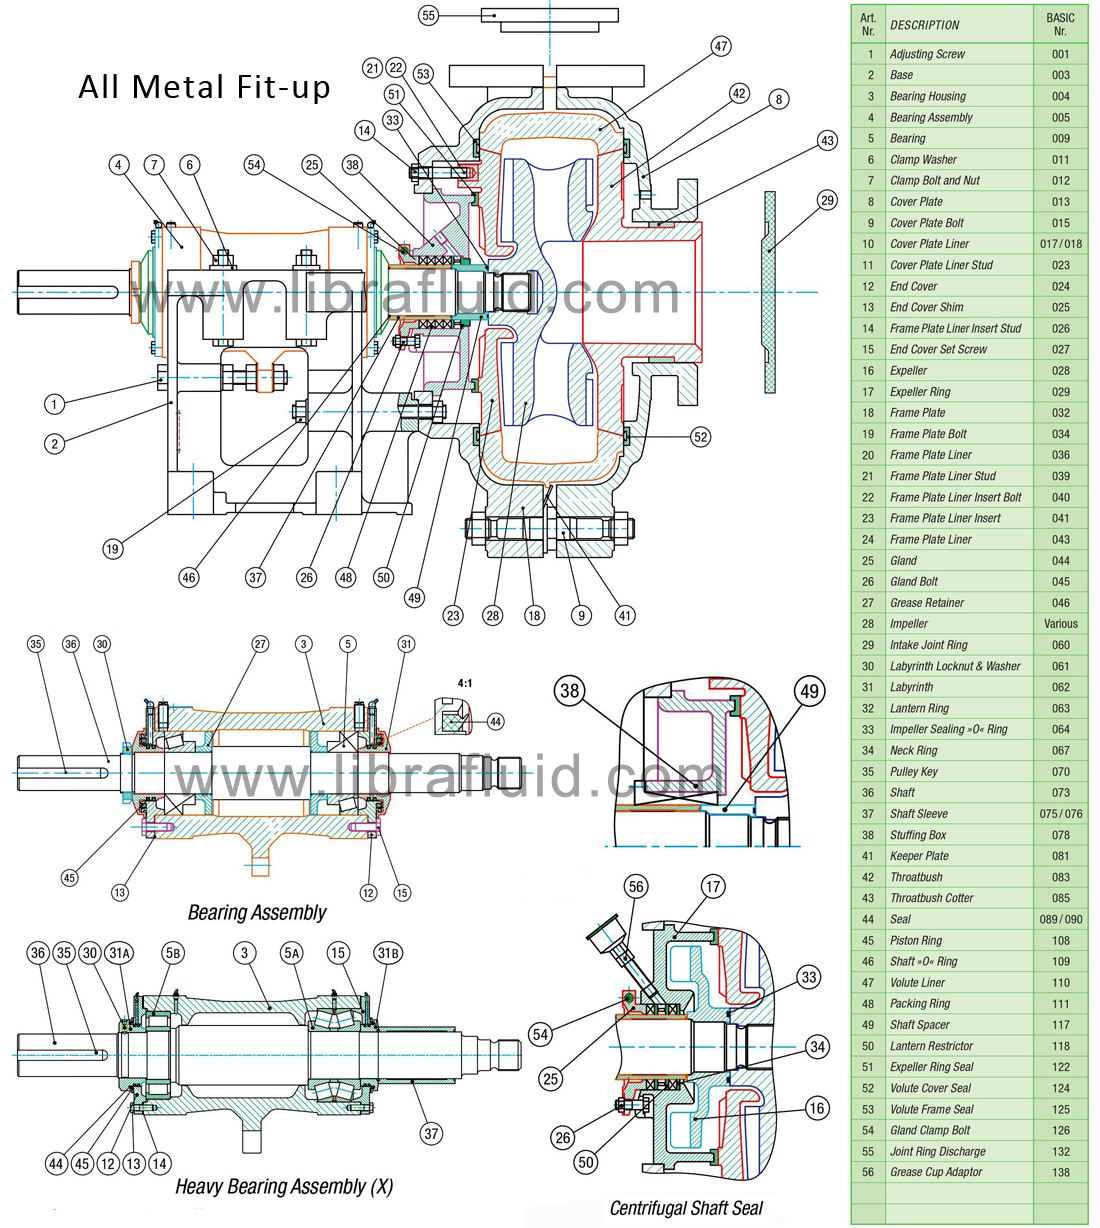 high head slurry pump assembly drawing